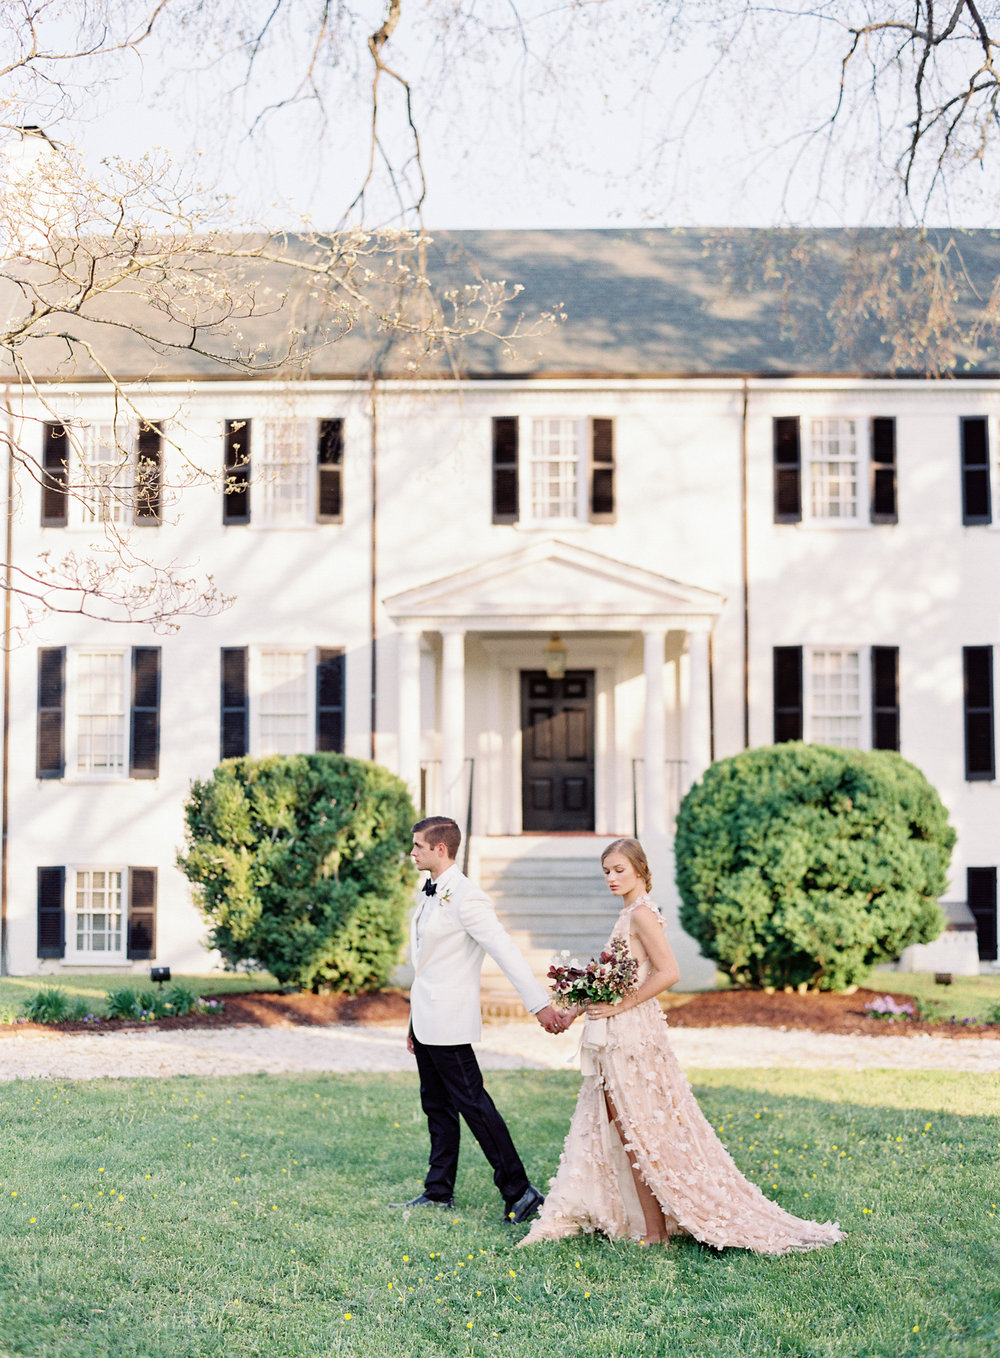 Virginia blush spring wedding at North Point Plantation with Rachel May Photography and East Made Event Company featured on OnceWed-0297.jpg